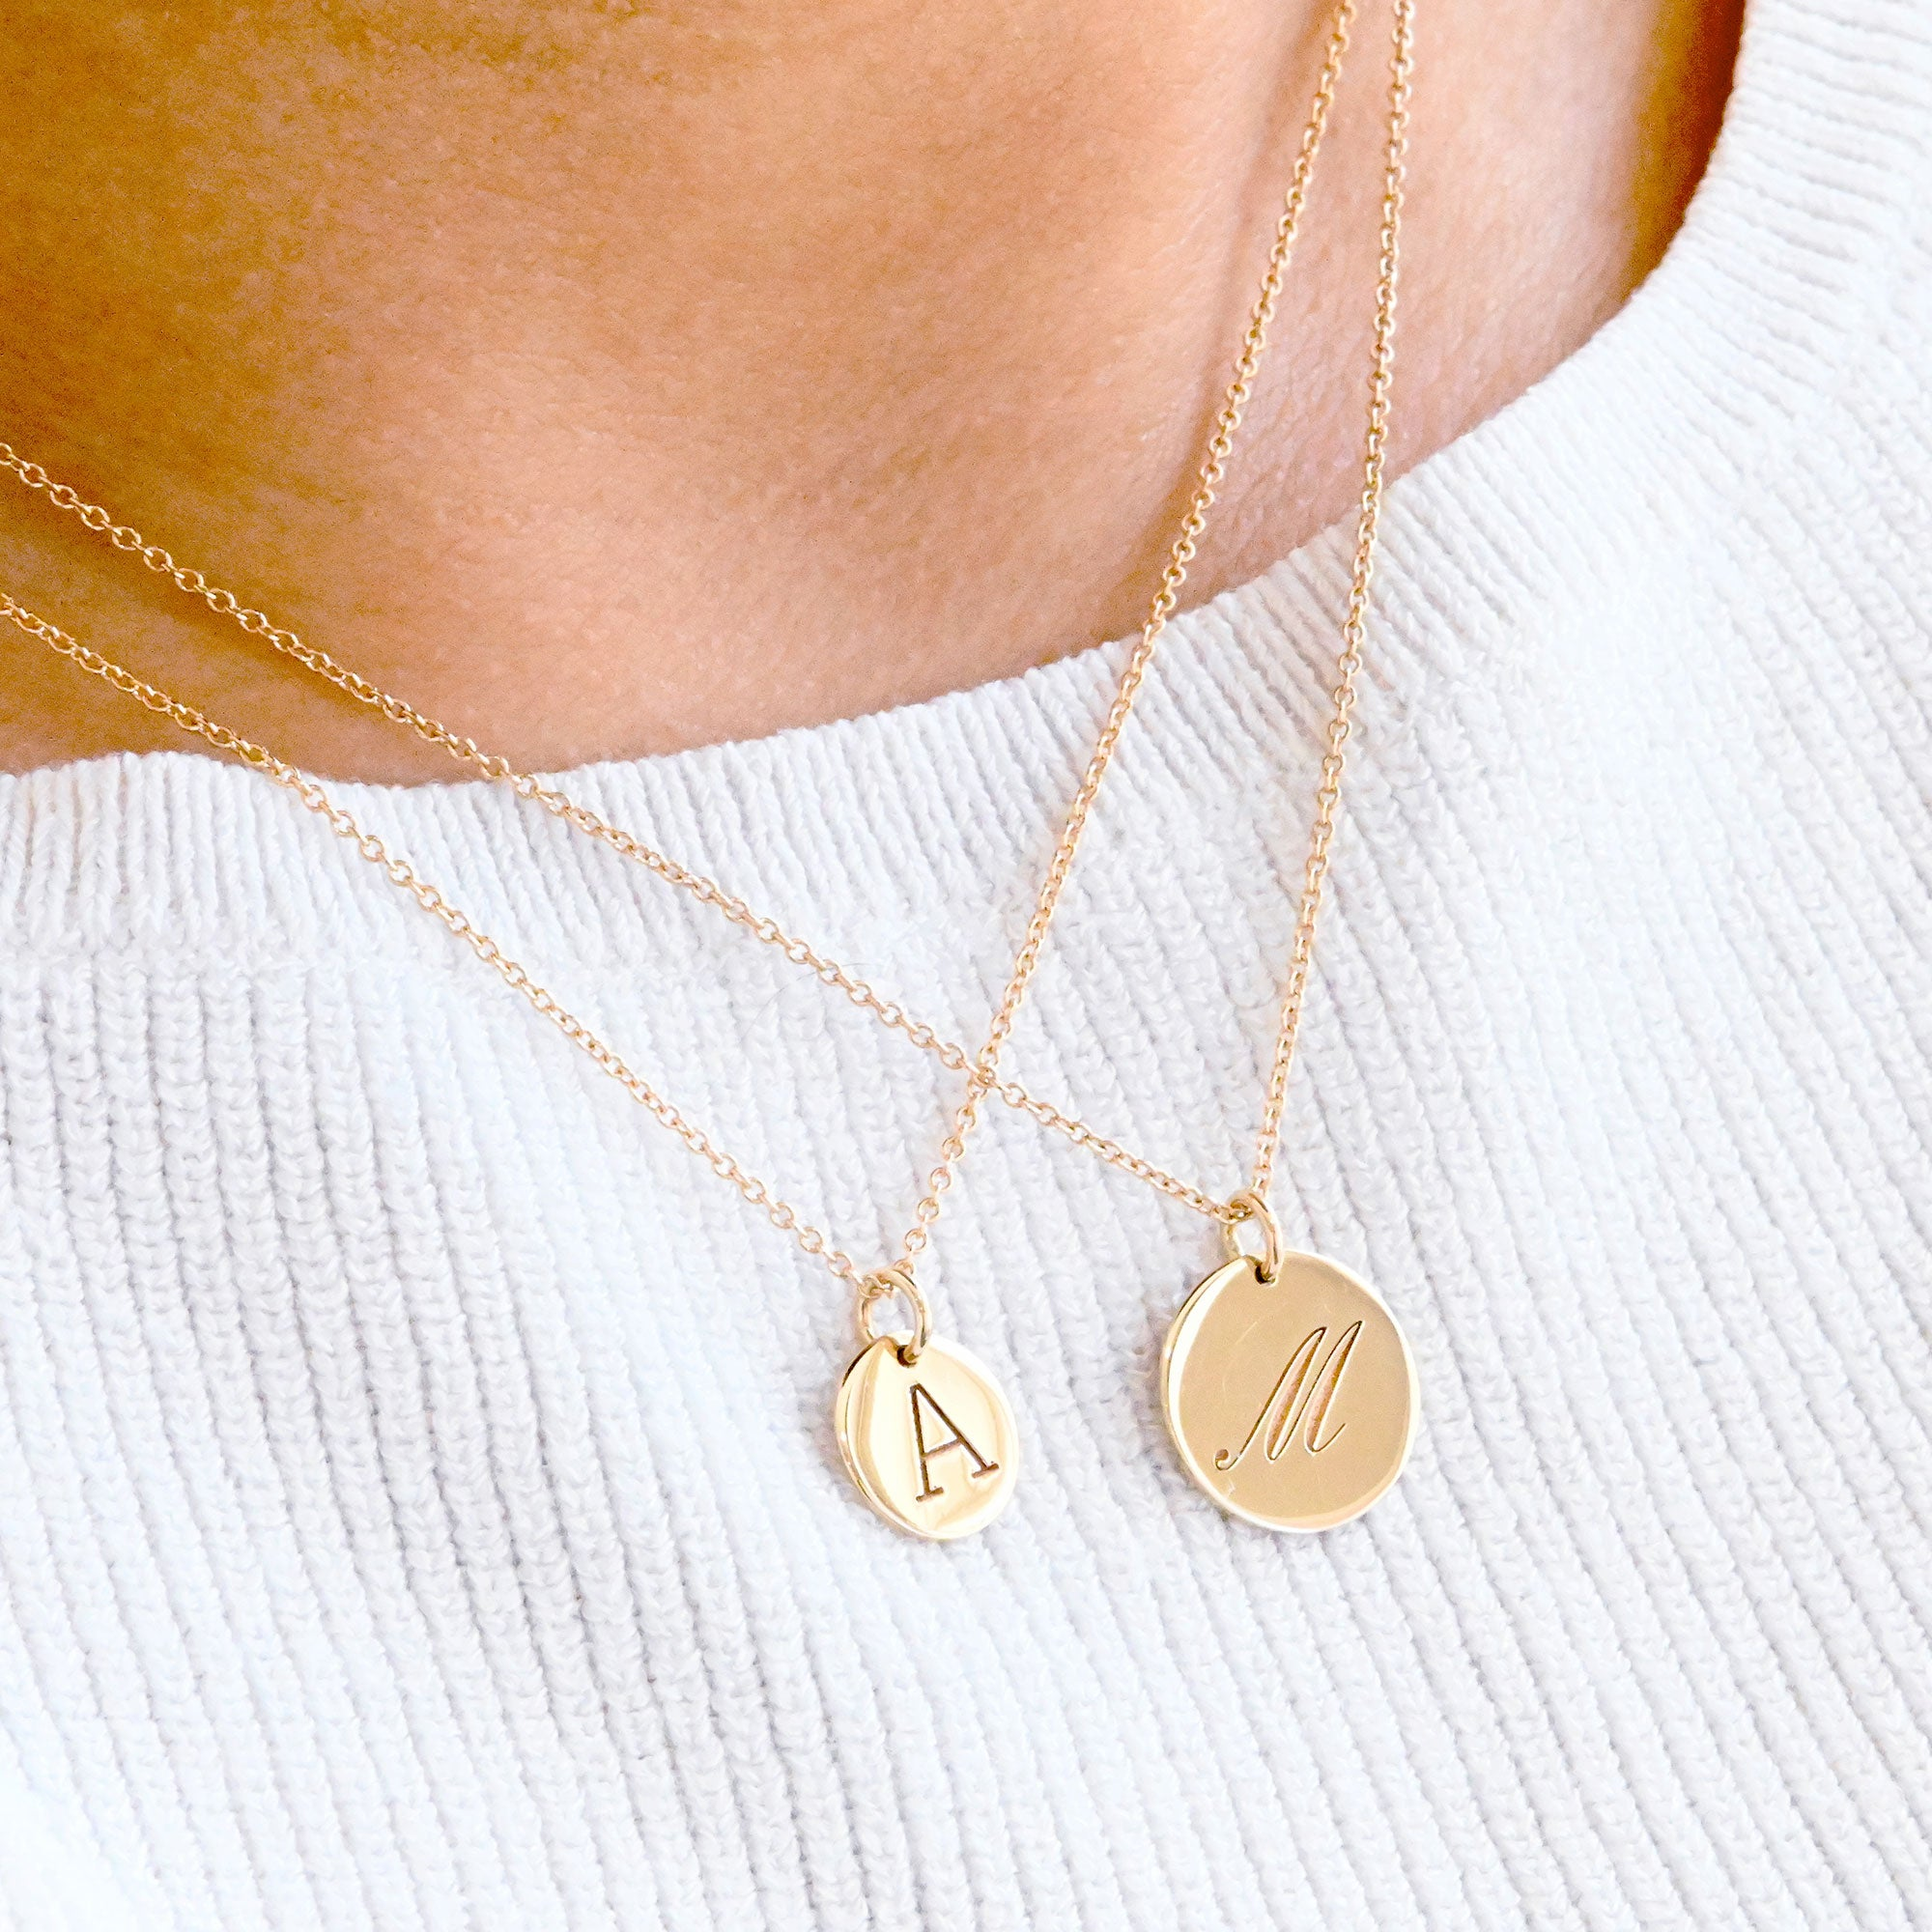 Small 14K Gold Initial Necklace (available with or without a chain)